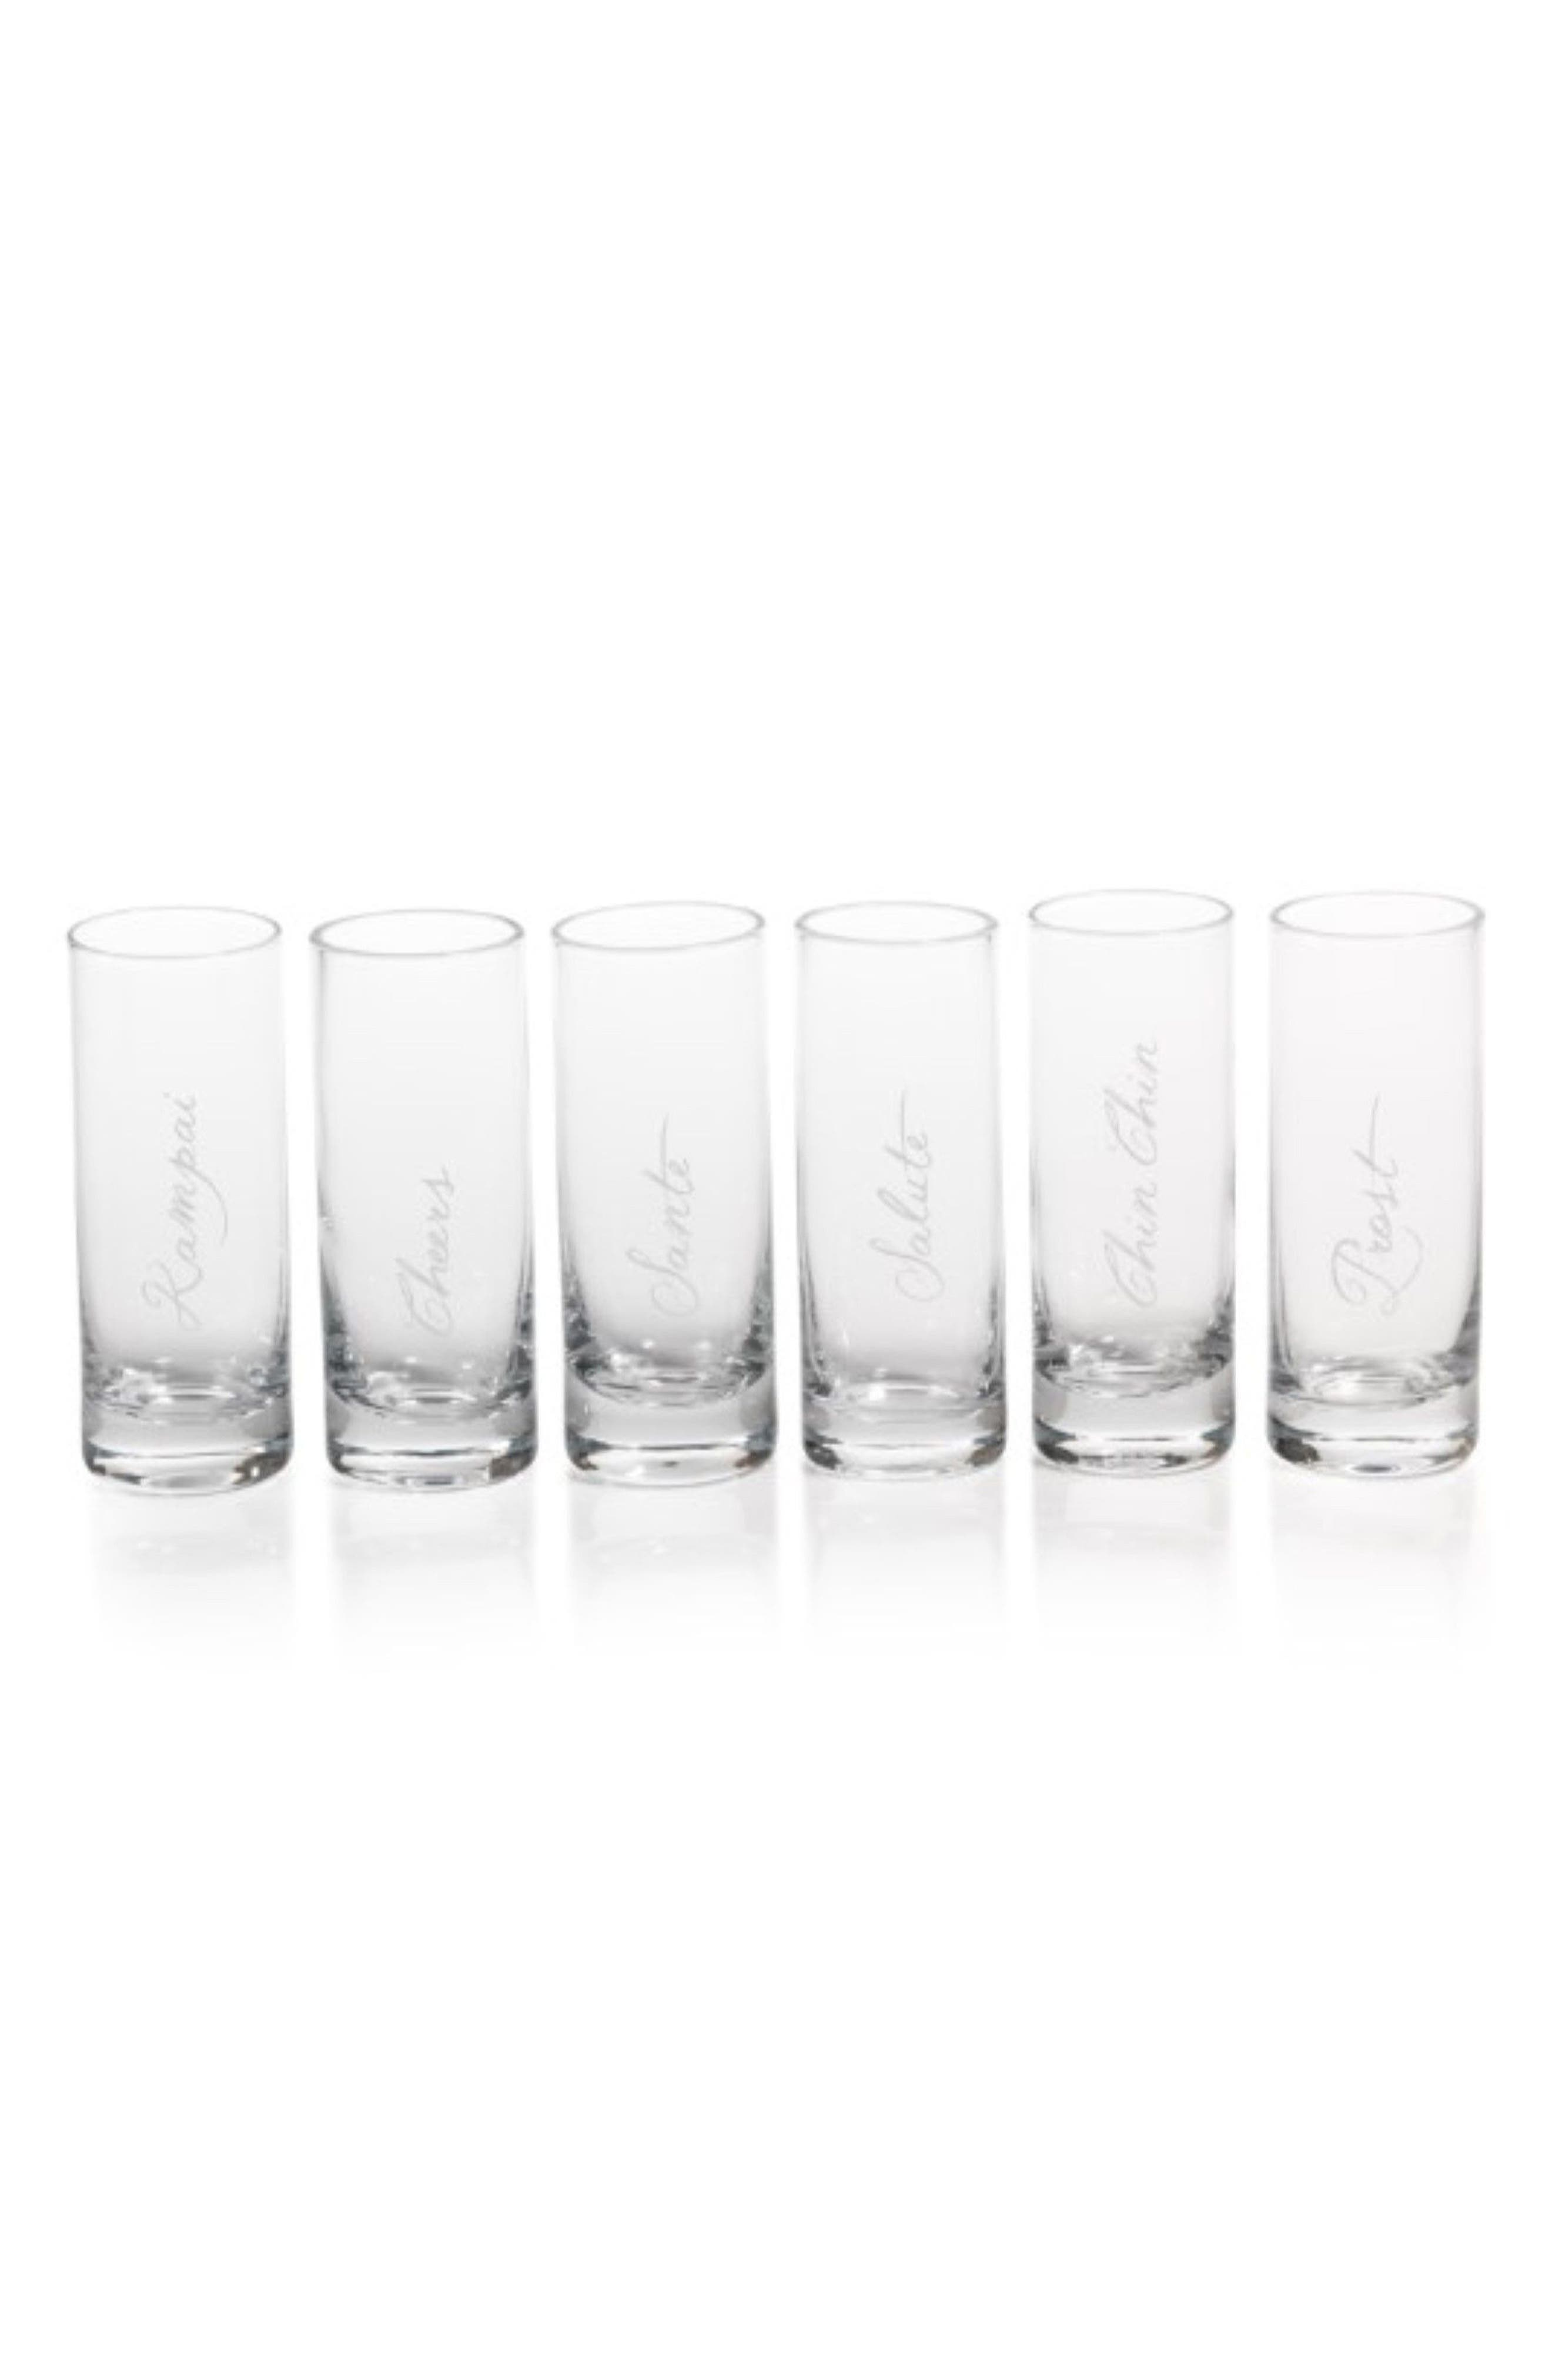 Tula Celebration Set of 6 Shot Glasses,                             Main thumbnail 1, color,                             100